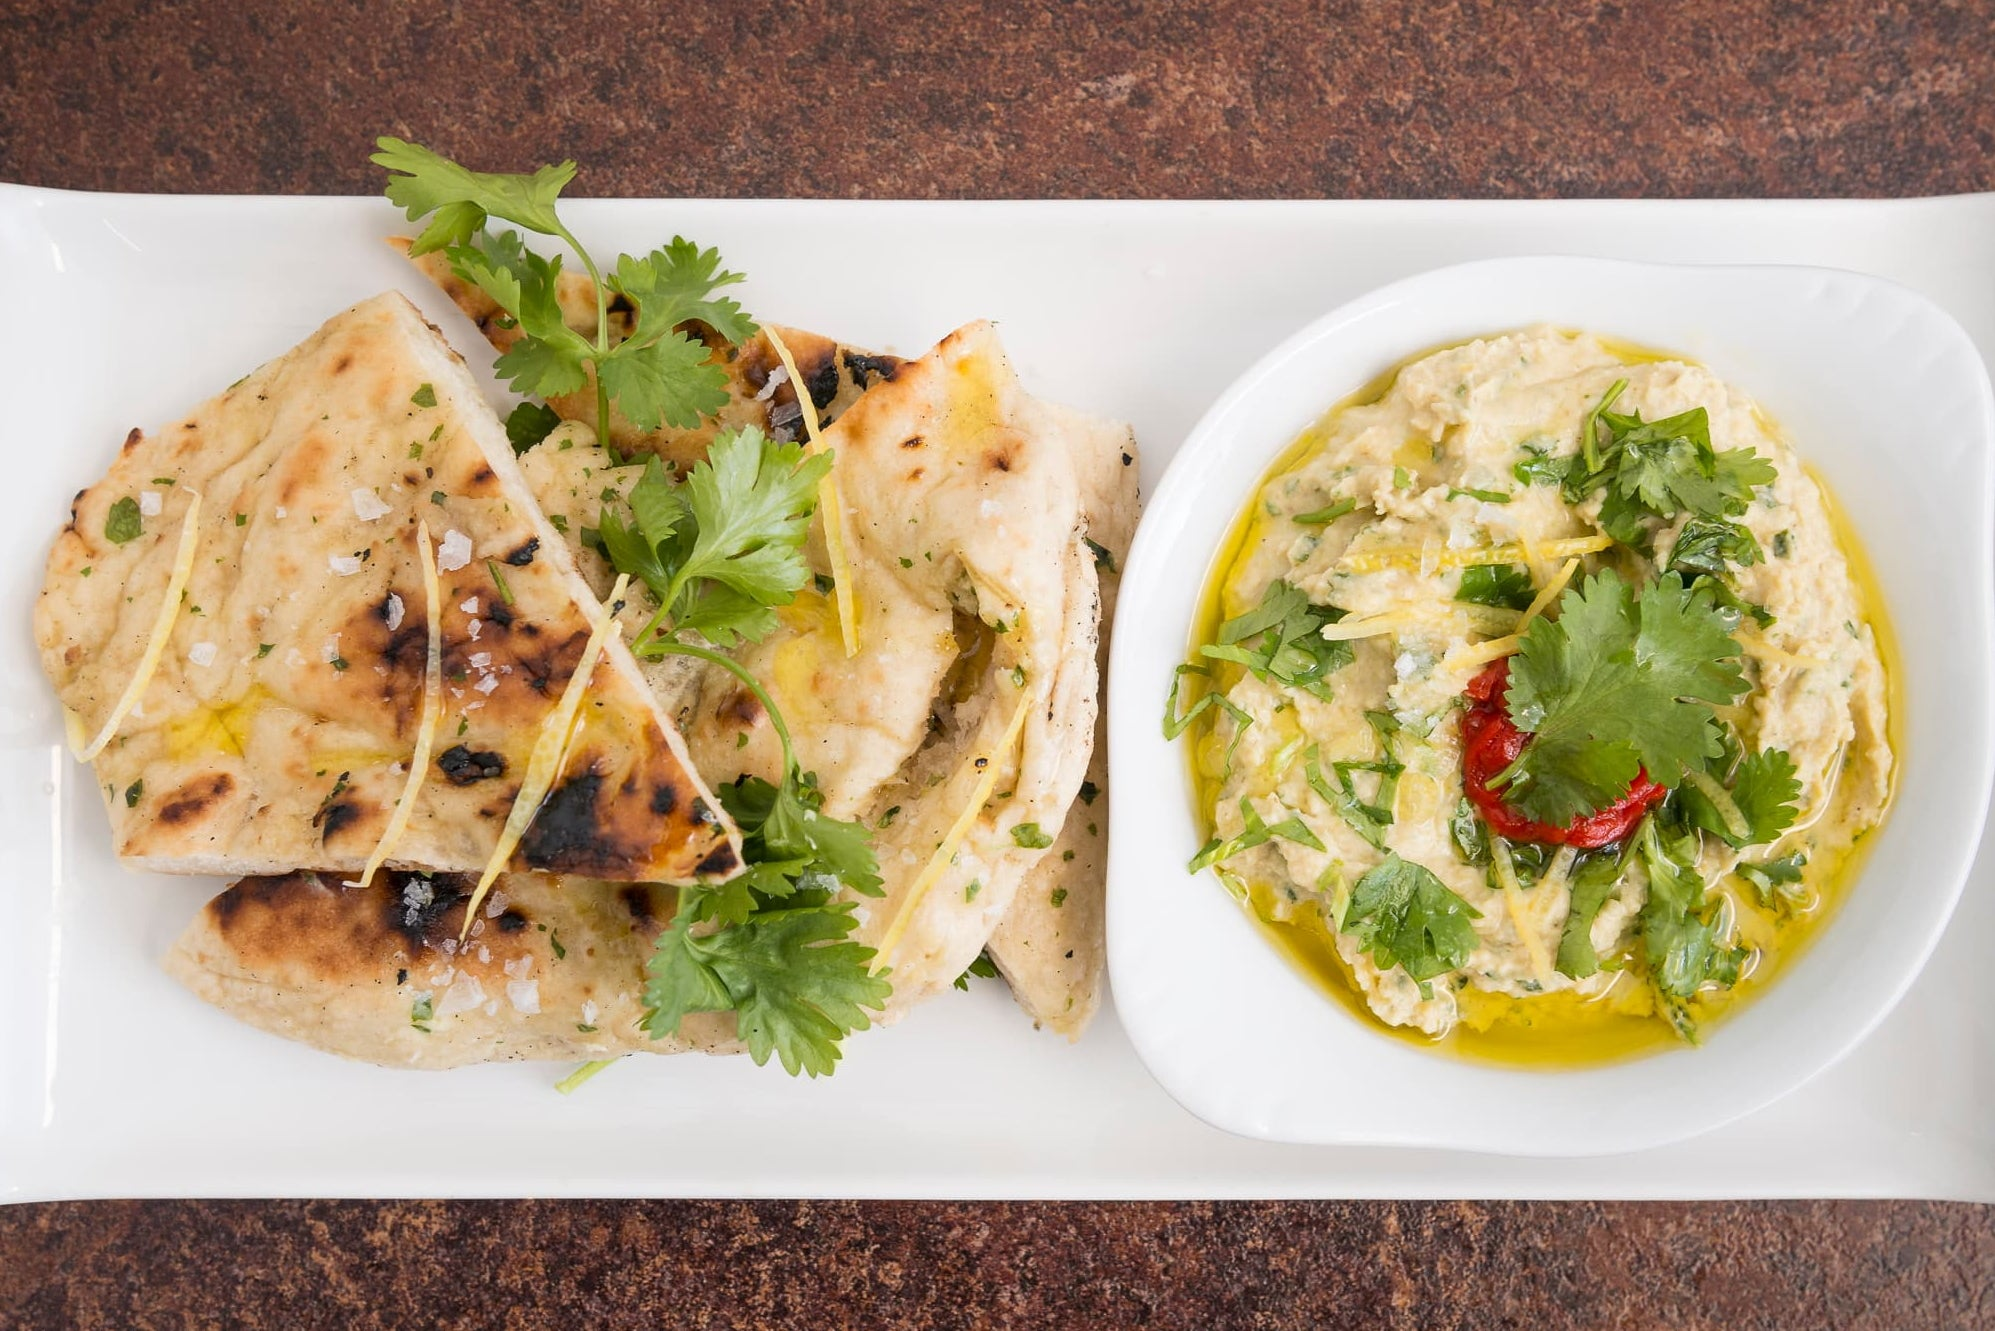 Lemon & coriander hummus with handmade flat bread to share for 2 people (VE)